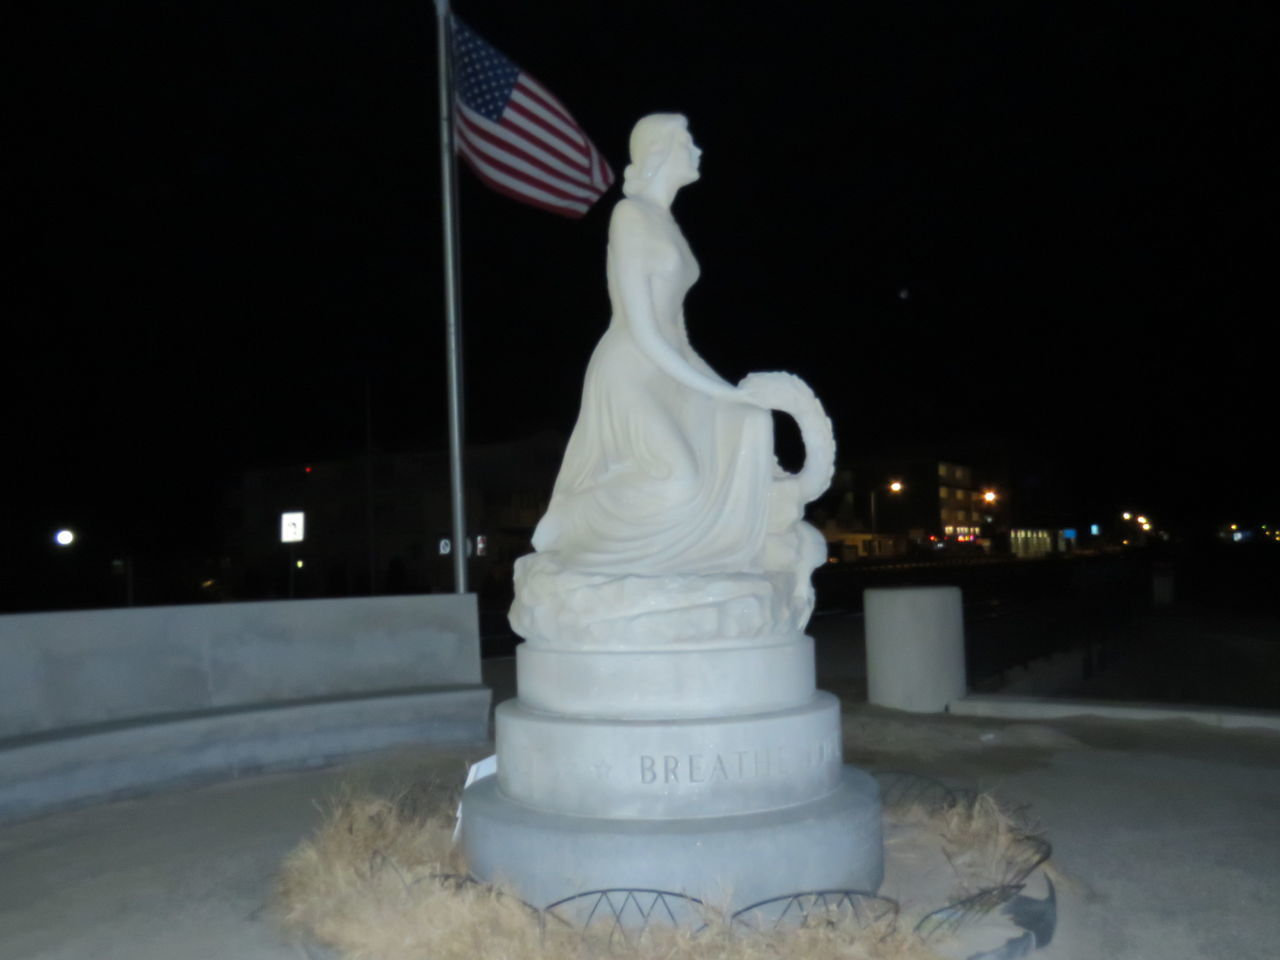 Hampton Beach Black Background No People City Lights By Night Flag Hampton Beach Men Lost At Sea Night No People Outdoors Patriotism Statue Of A Woman